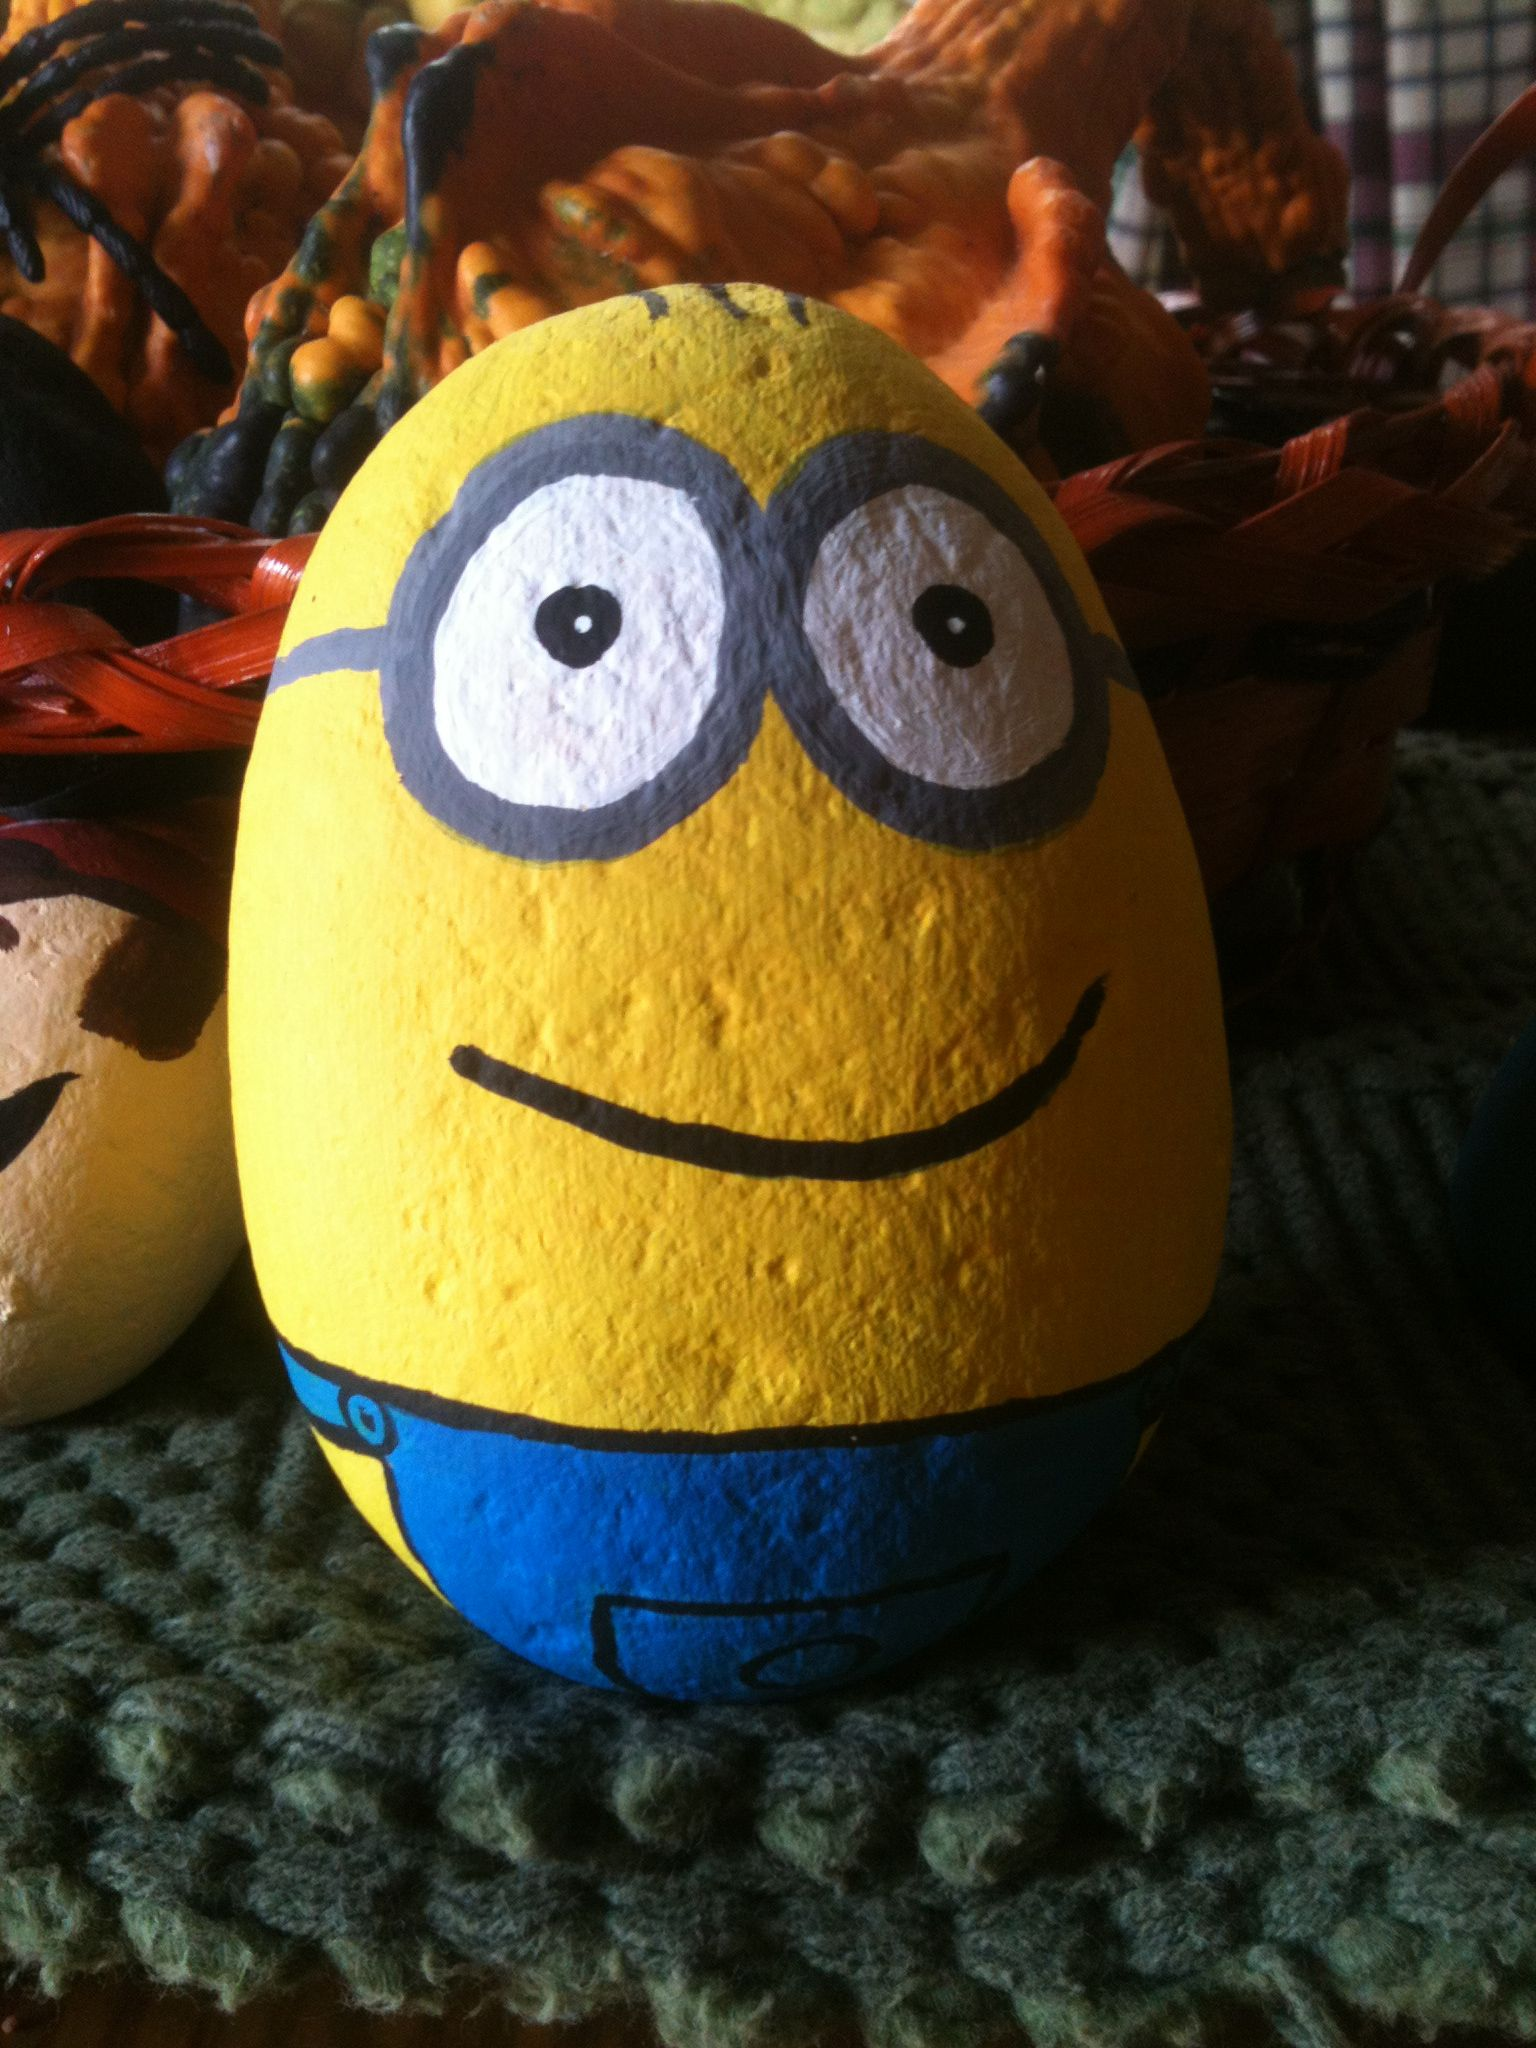 Minion despicable me painted rock | Yay for me! NotSoCraftyJackie ...